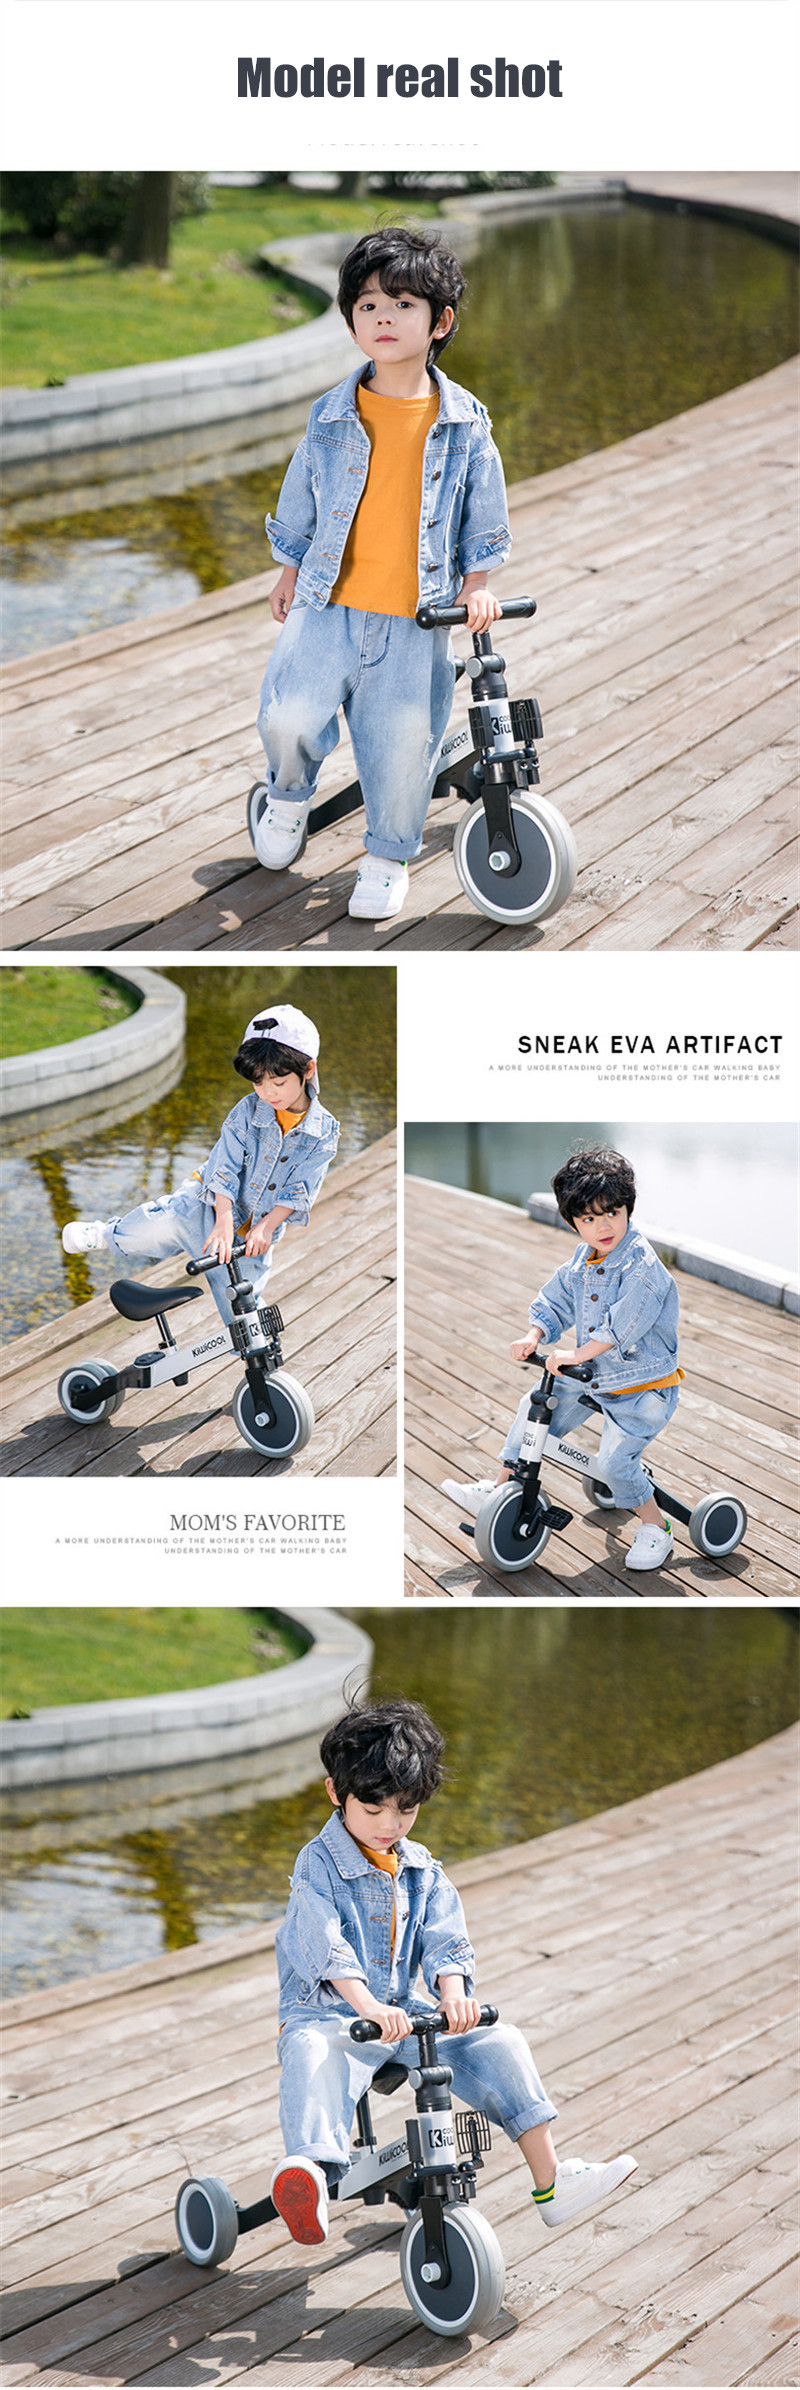 Hb5d65934fb364e088fee453449f09c473 3 in 1 Kids Tricycle + Balance bike + Baby walker Child Push Bike Toddler Learn to Ride Bicycle Ride On Toy Boy Girl Xmas Gift